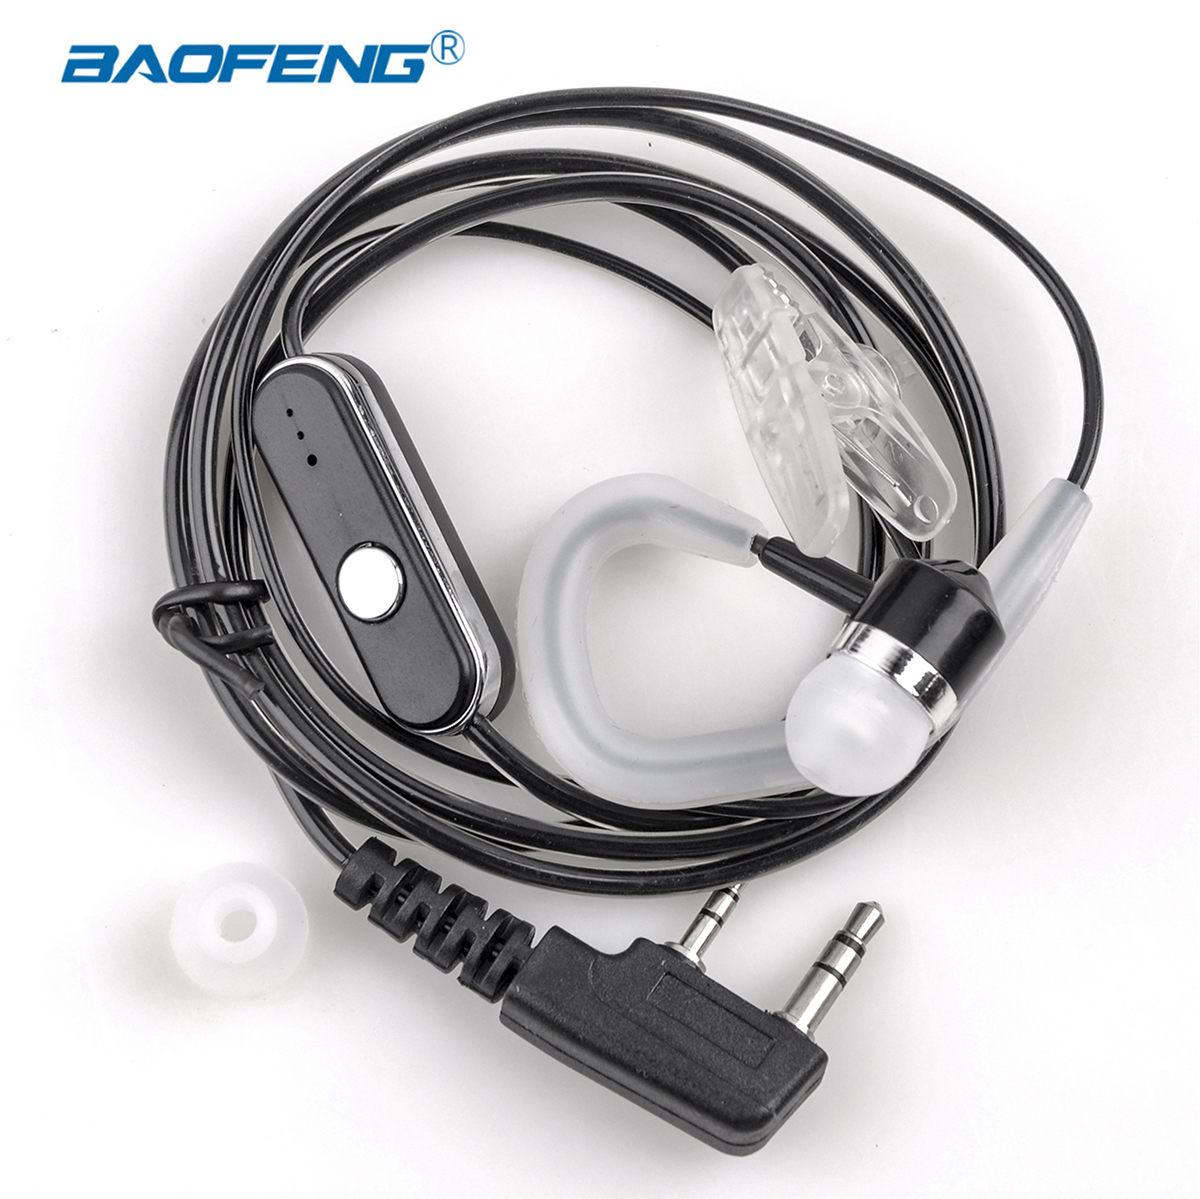 Walkie Talkie In Ear Hook Baofeng Radio Earphone With Ptt Earpiece K Port Uv 5r Unilateral Headphones For Protable Radio Headset